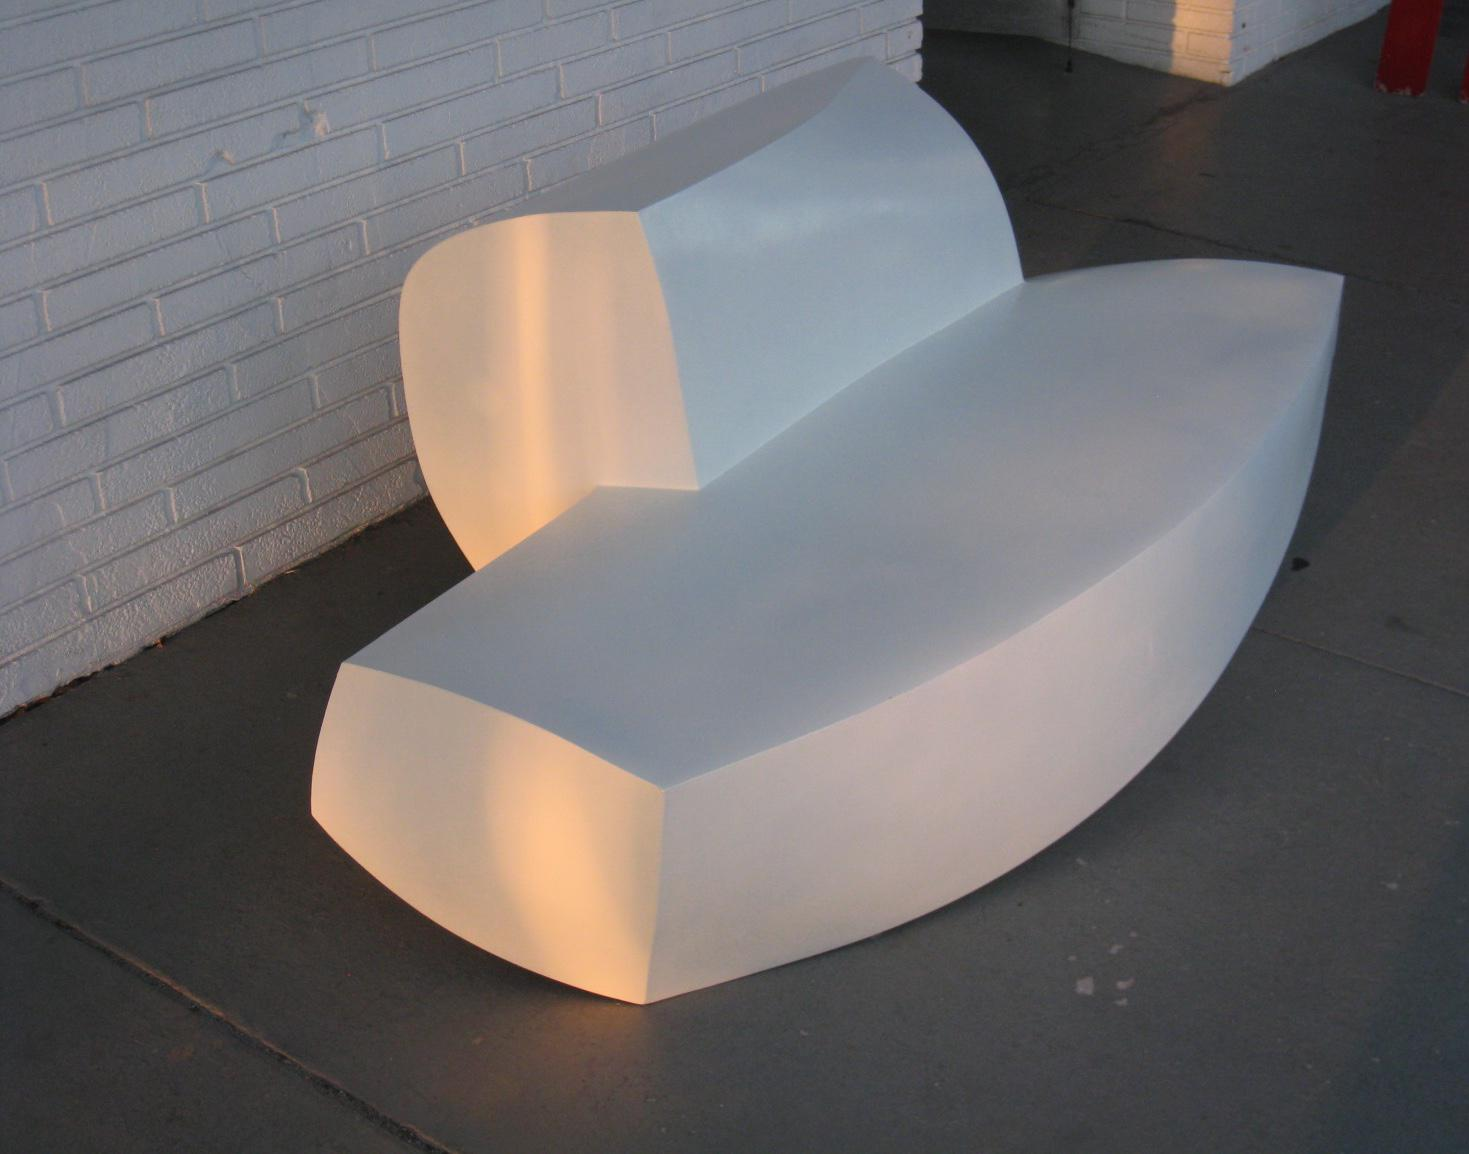 Ordinaire Modern Frank Gehry Molded Plastic Sofa For Sale   Image 3 Of 6